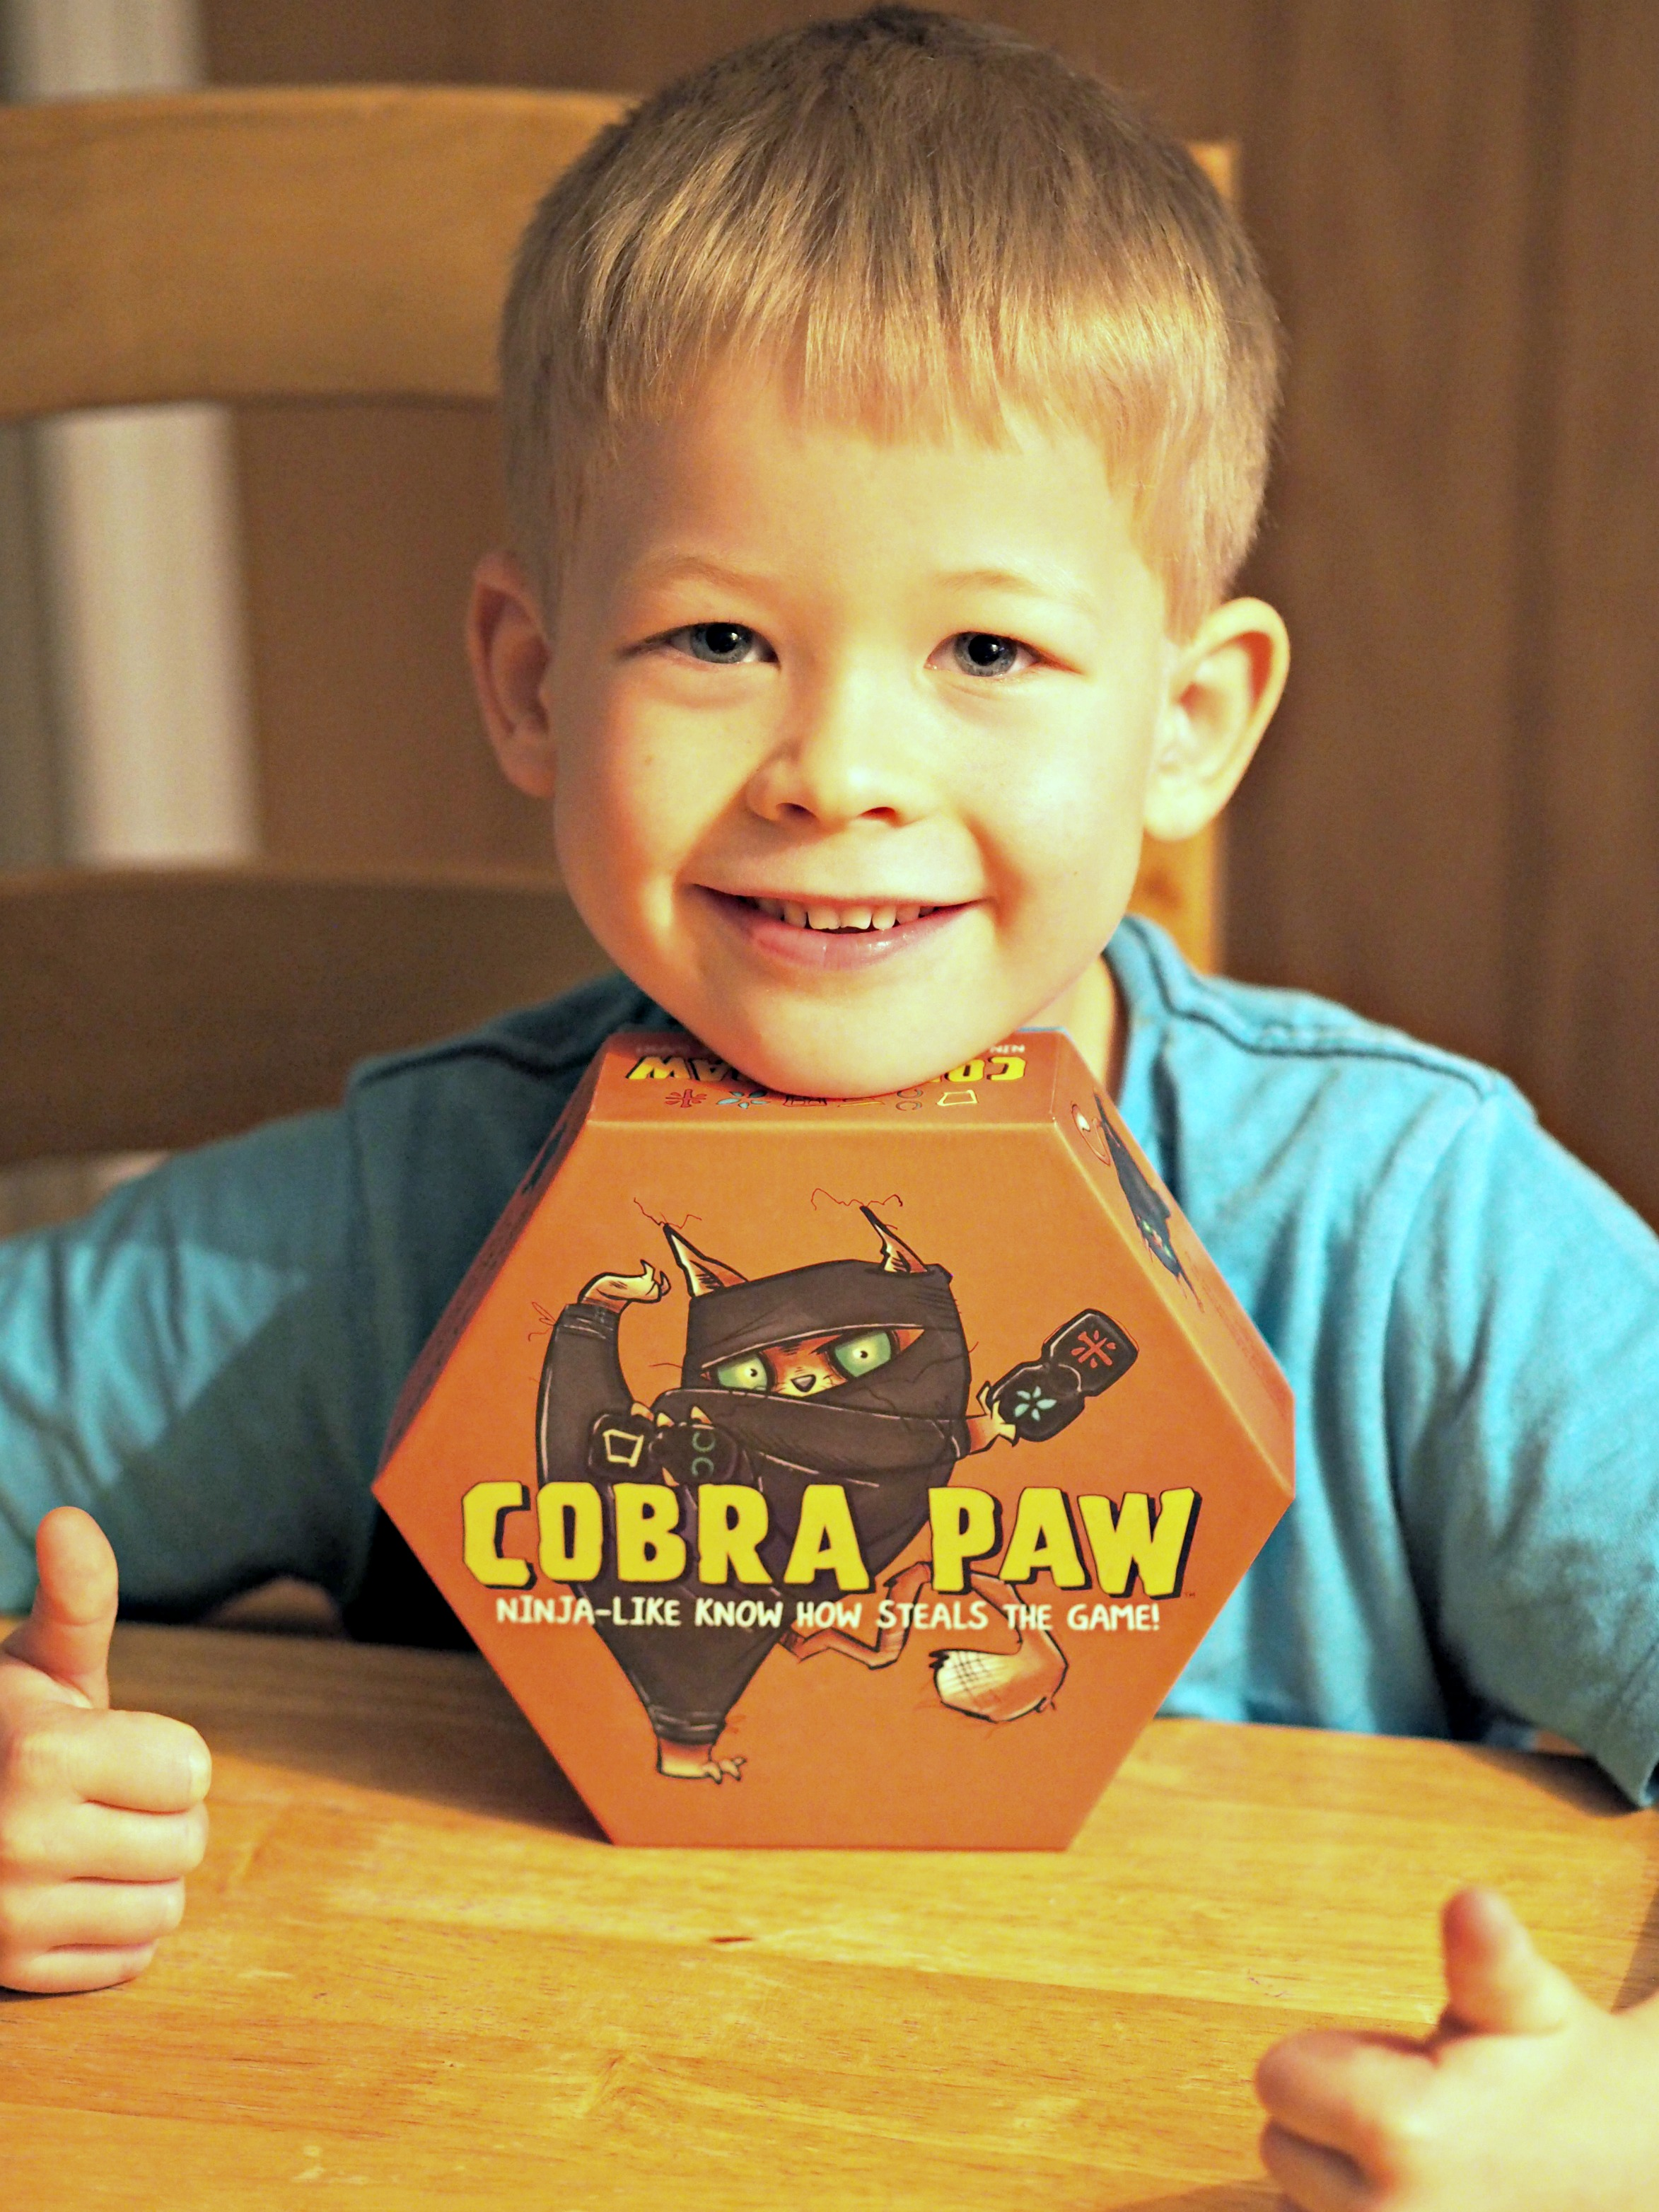 Asmodee Dobble and Cobra Paw Board Games Review - Cobra Paw